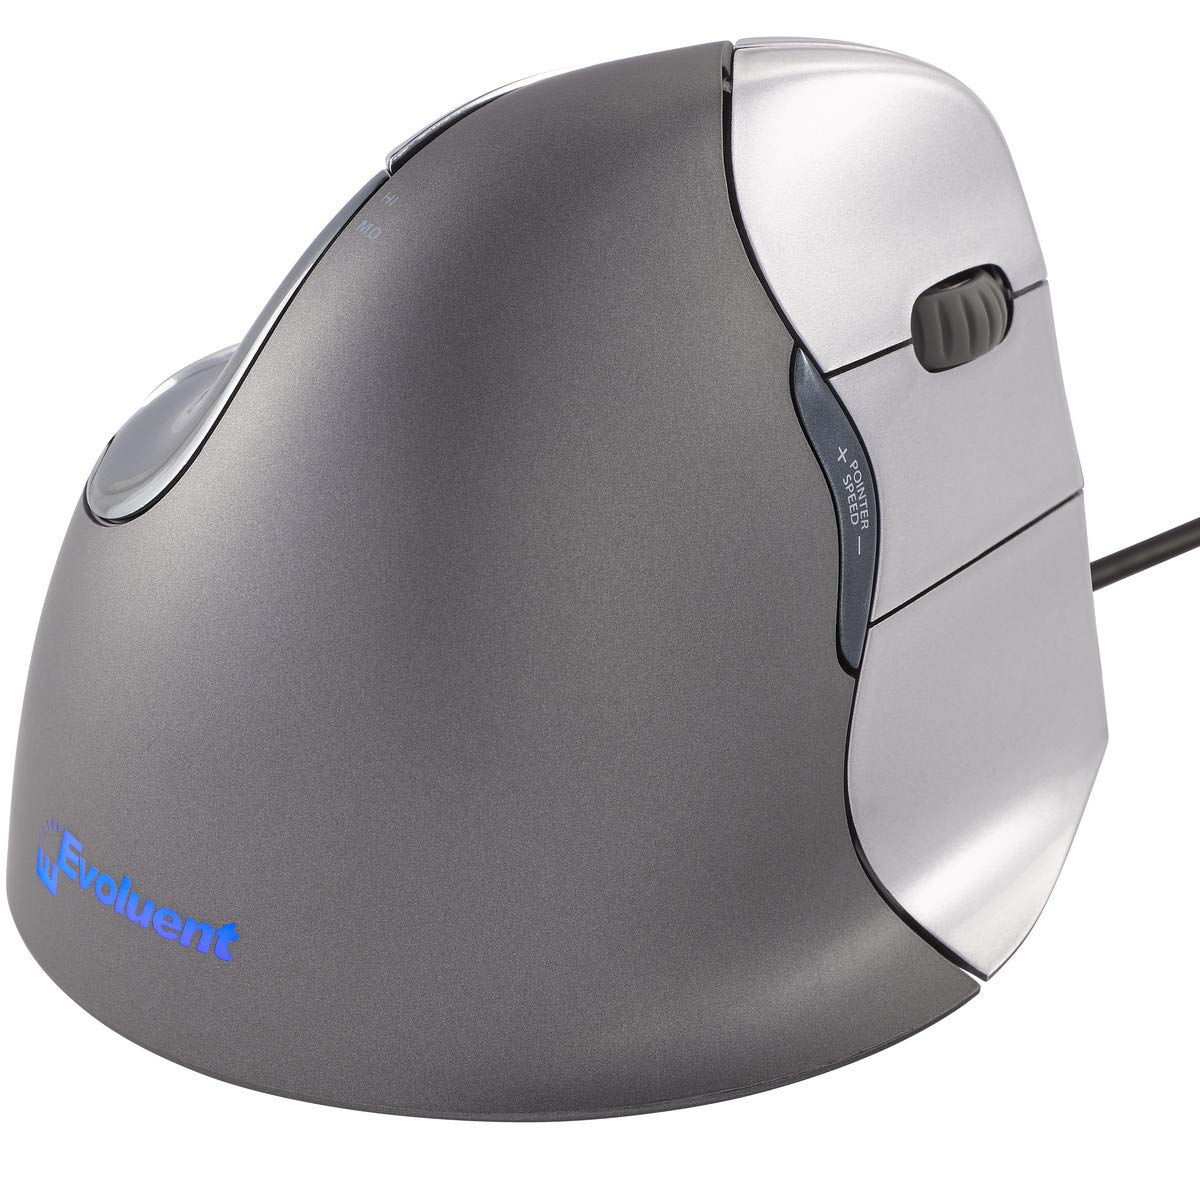 NEW DRIVERS: EVOLUENT MOUSE